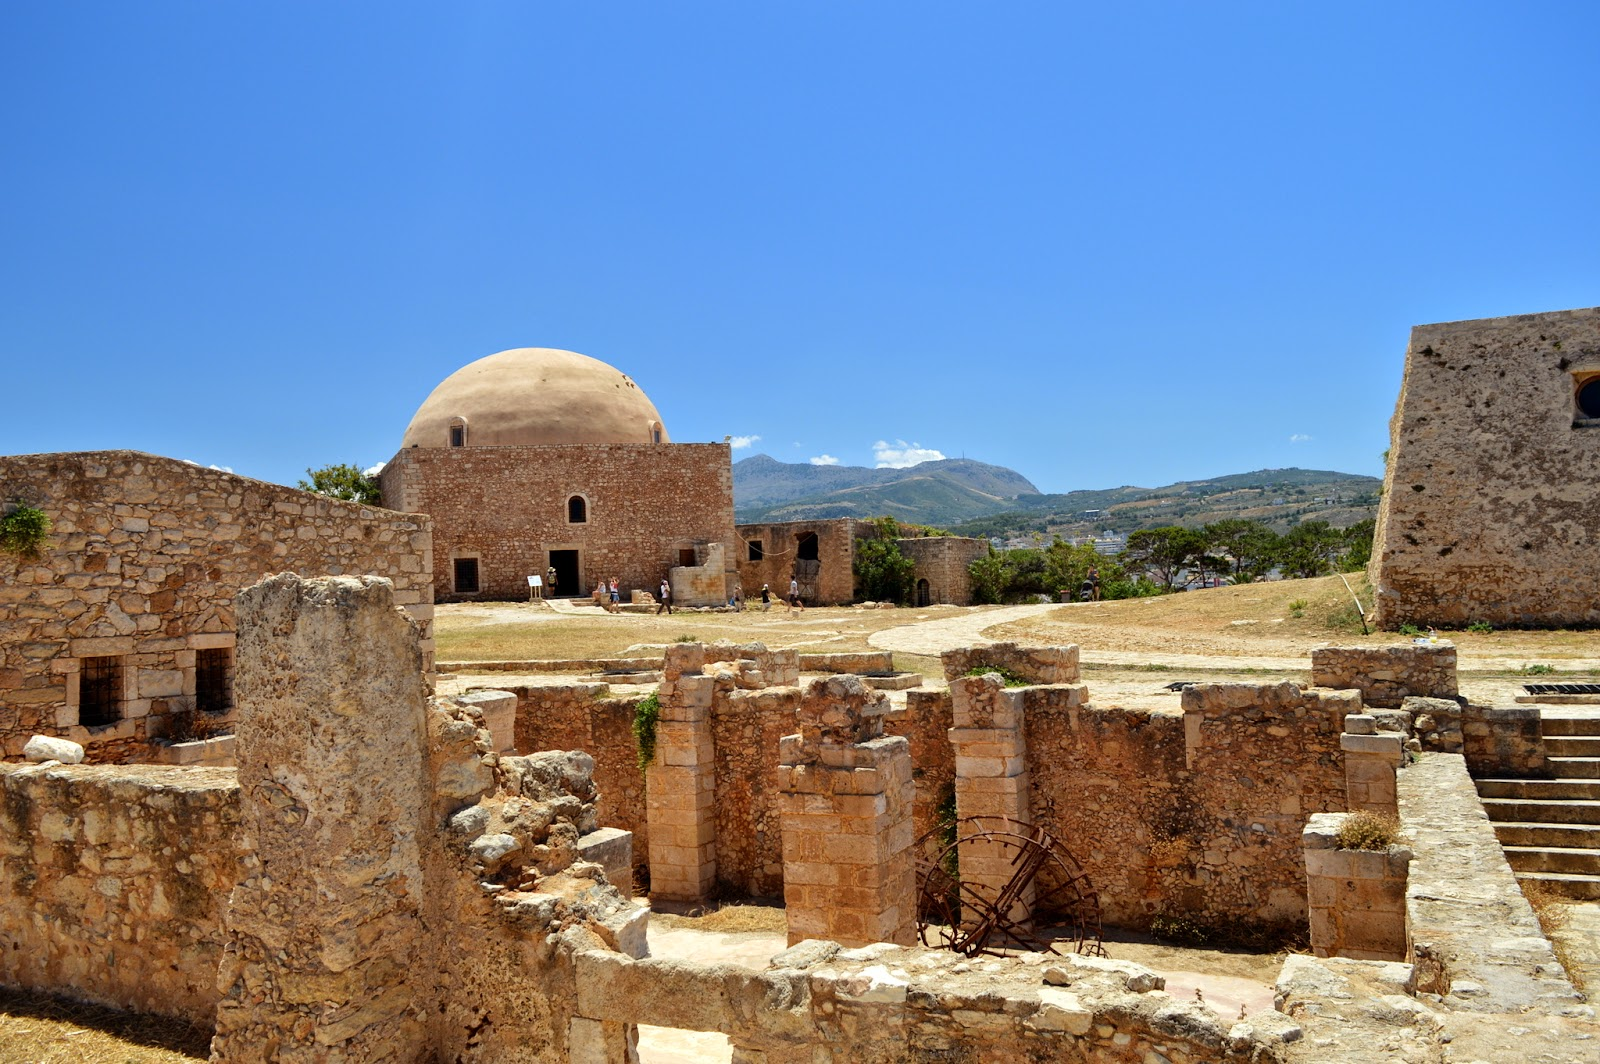 Fortezza inner view, an old fortress in Rethimno, Crete, Greece.